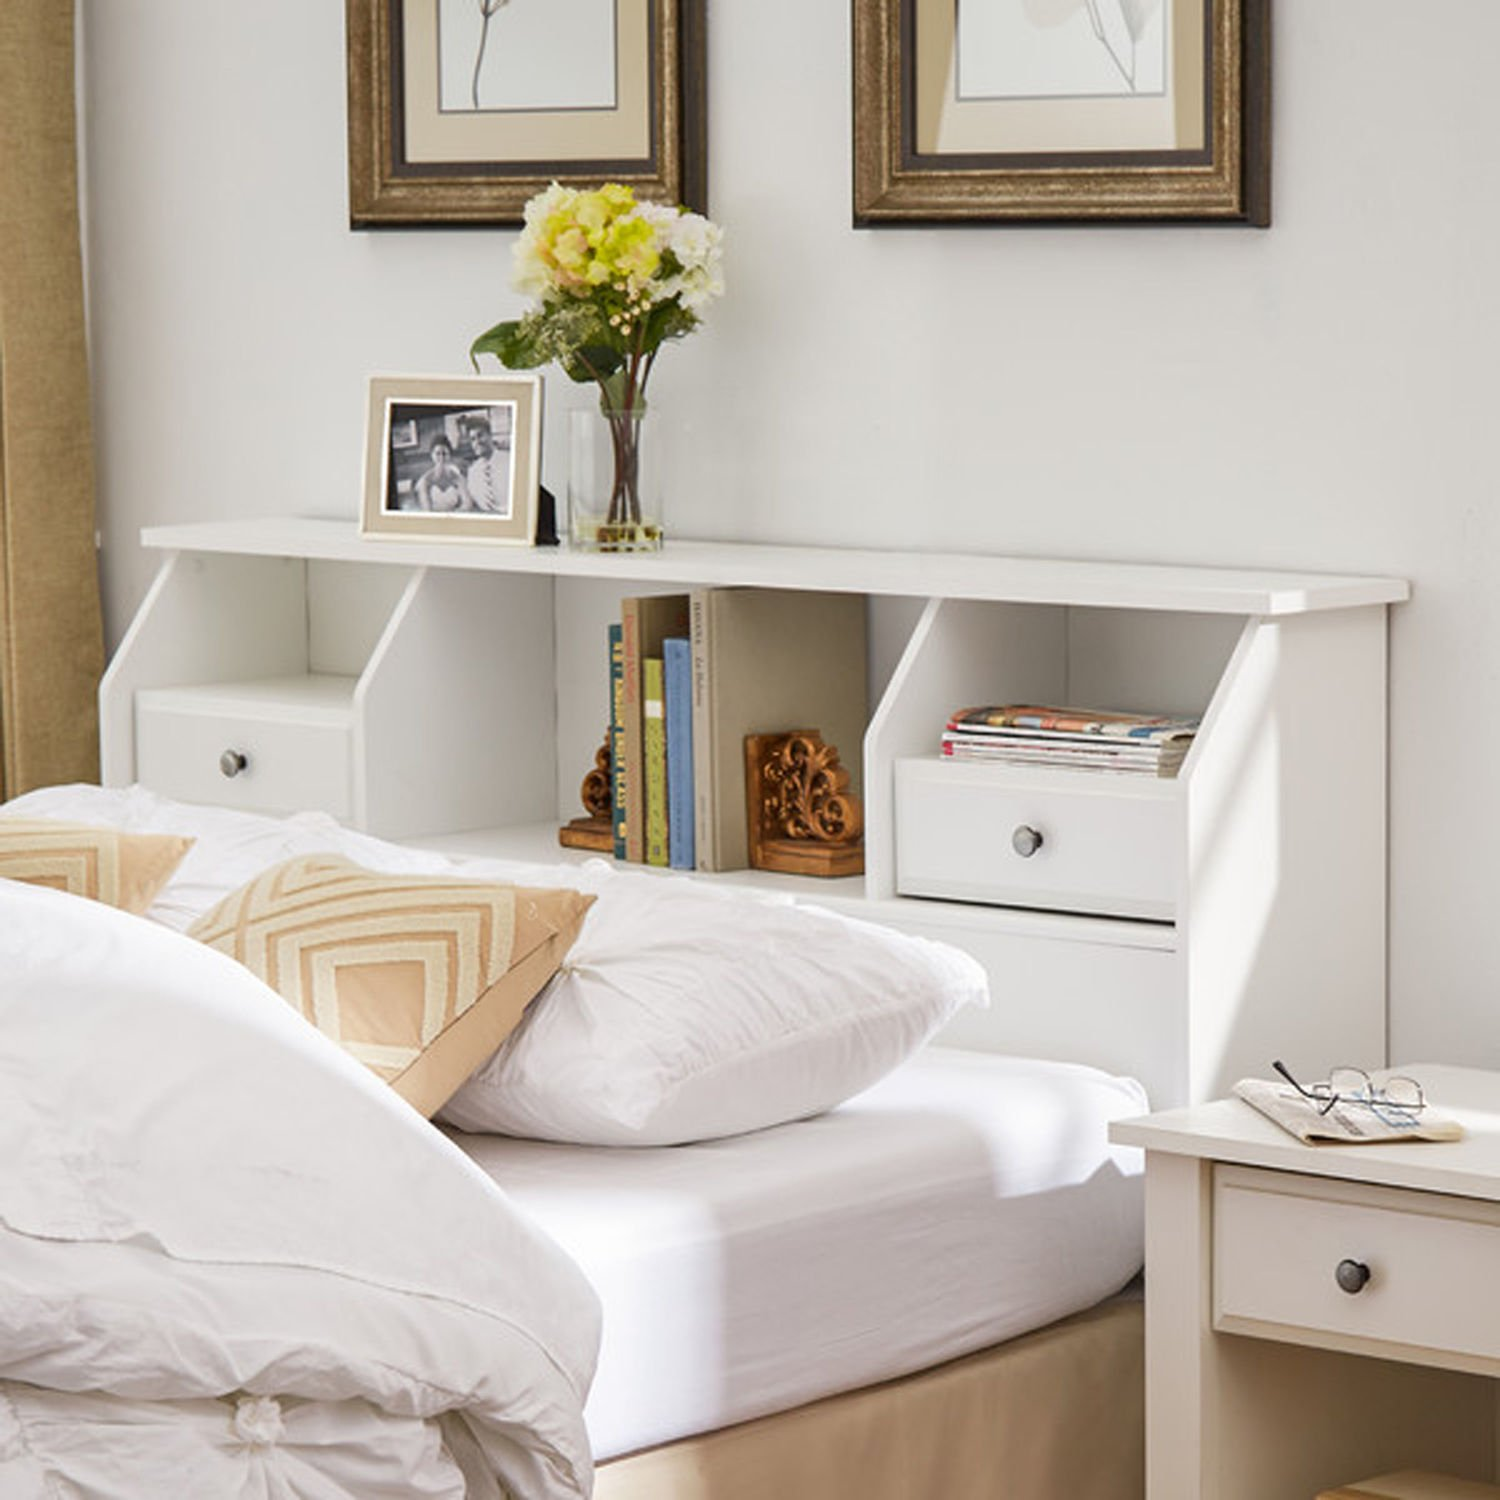 Revere Headboard With Storage Queen/full Size Bookcase Drawers Wood White  Shelves Modern Bedroom Headboard (full/queen, Soft White)